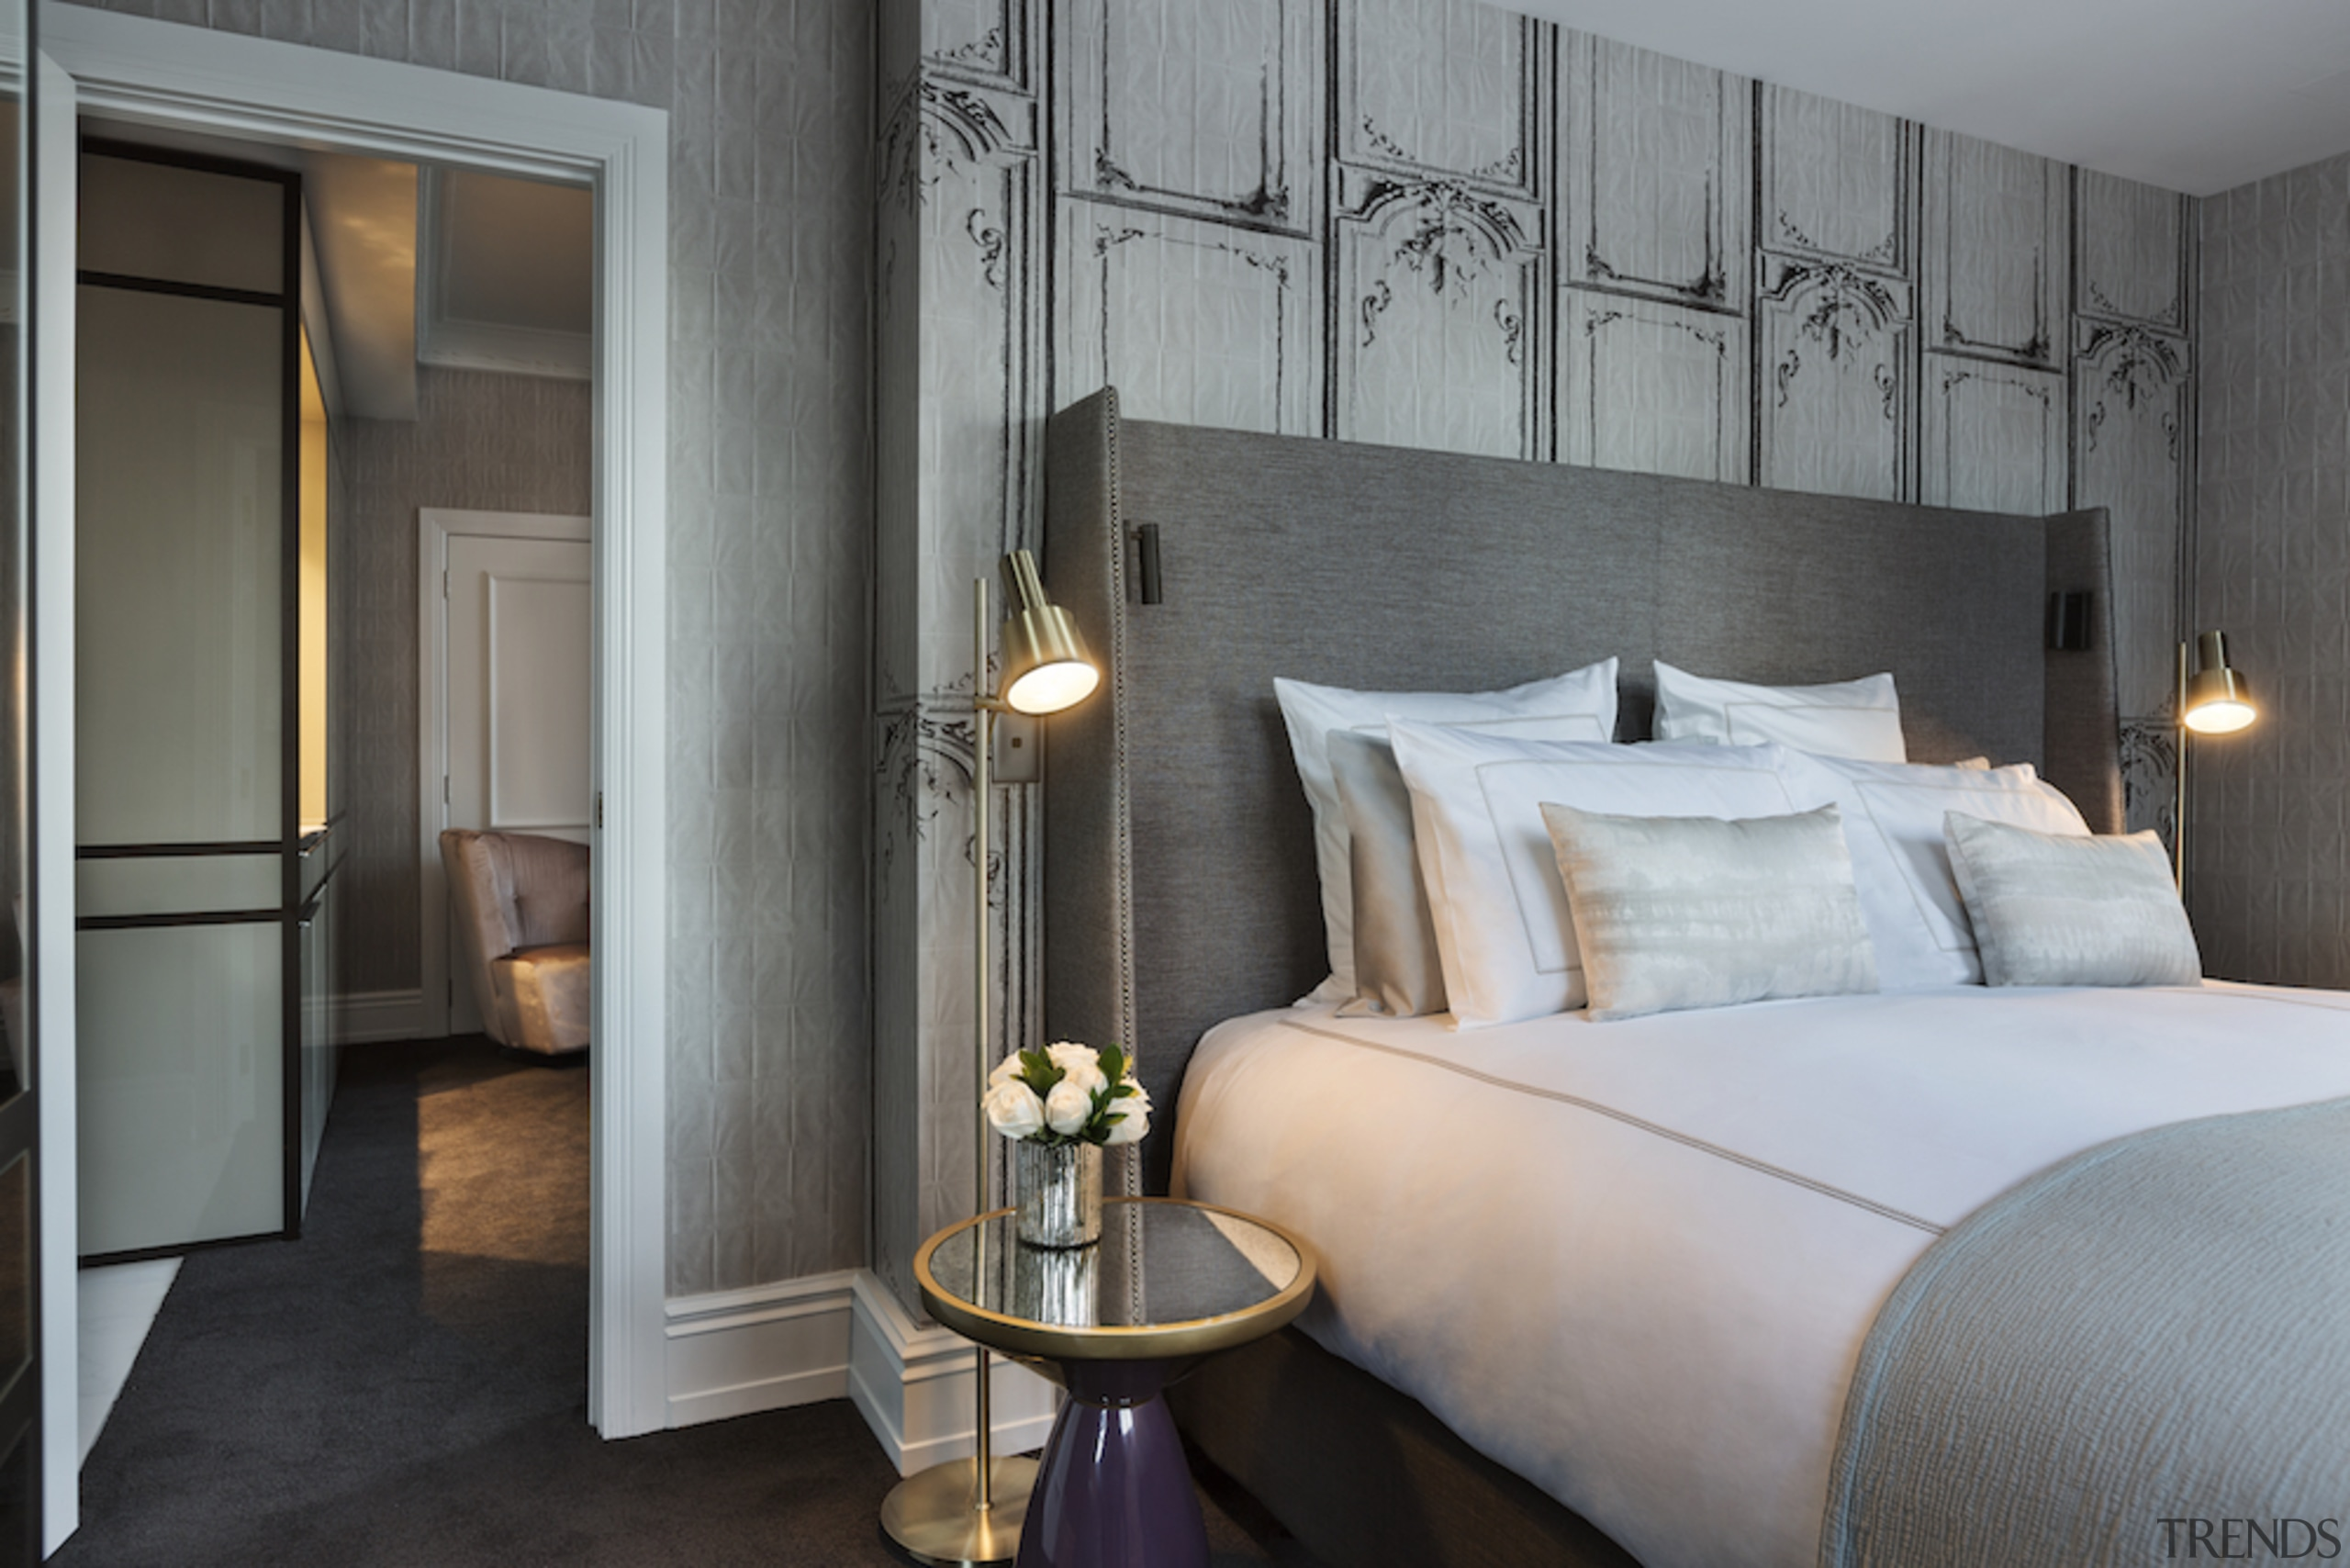 Junior Suite bedroom, Grand Windsor Hotel - Grand bed frame, bedroom, ceiling, floor, furniture, home, interior design, room, suite, wall, gray, black